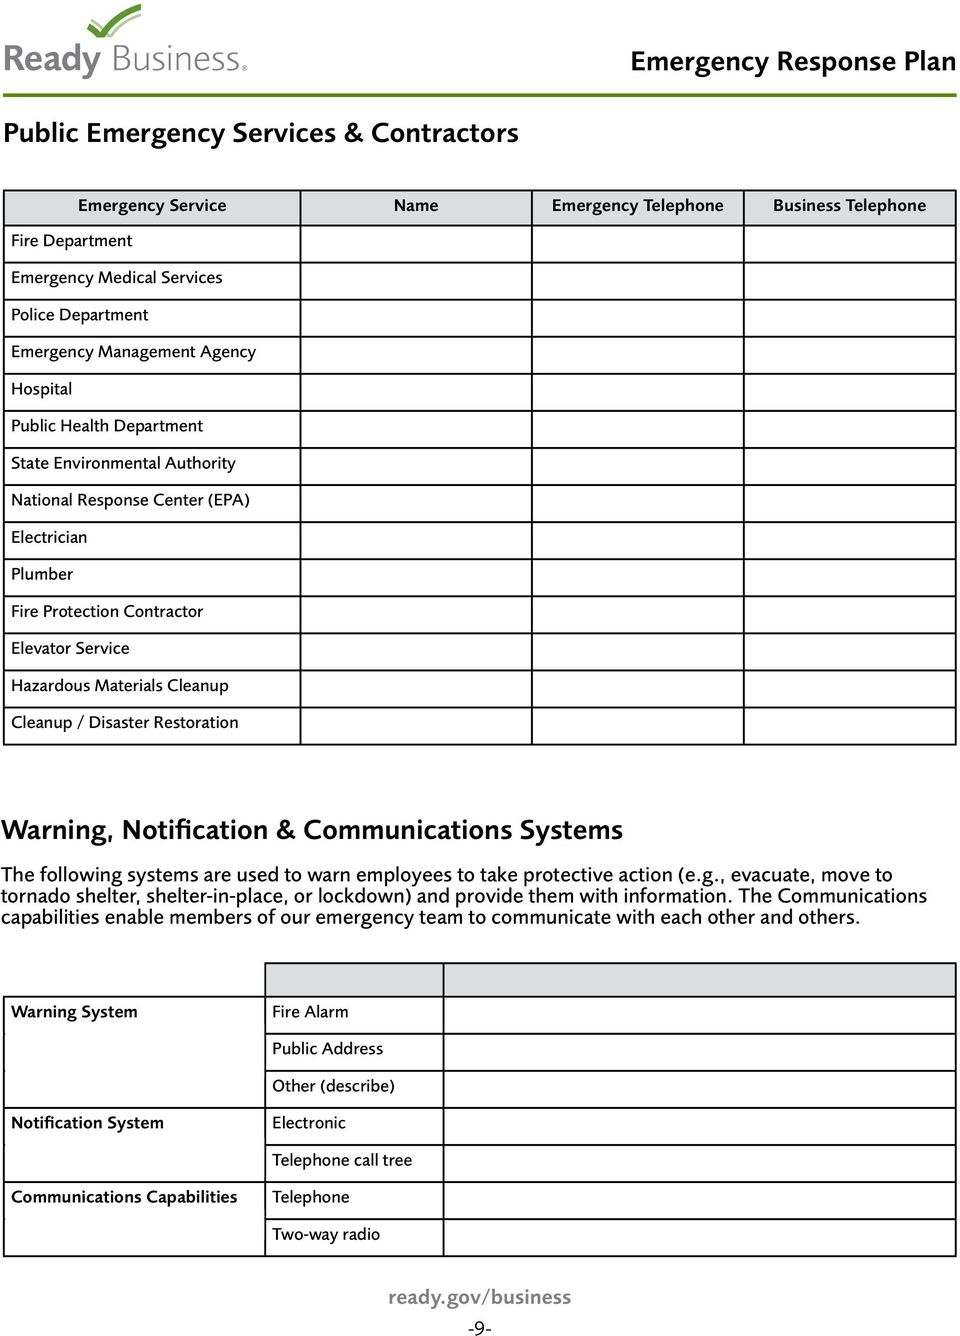 Restoration Warning, Notification & Communications Systems The following systems are used to warn employees to take protective action (e.g., evacuate, move to tornado shelter, shelter-in-place, or lockdown) and provide them with information.